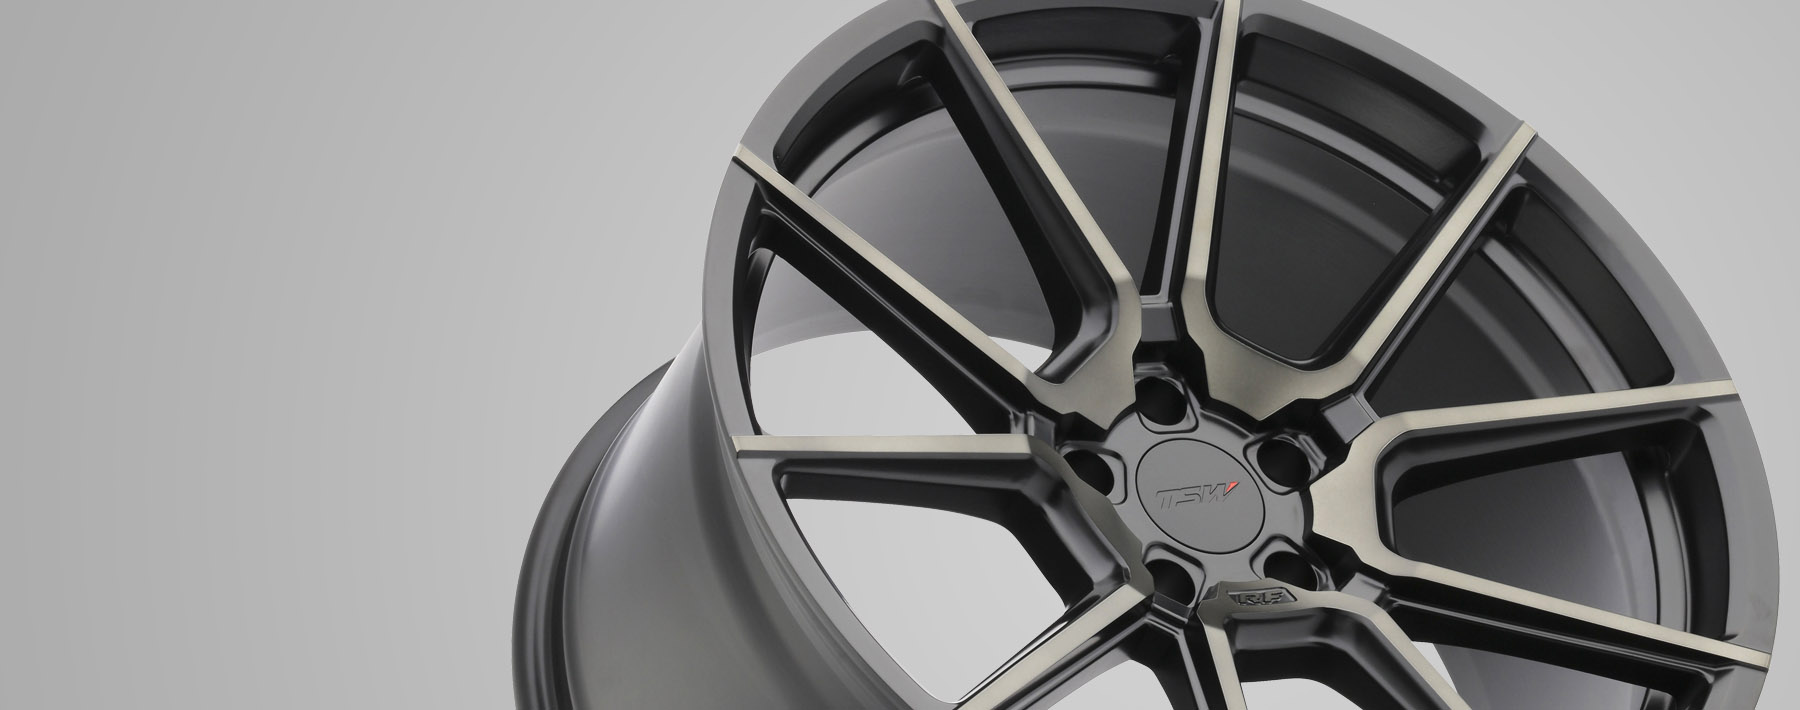 Wheels TSW Alloy Wheels - Bmw alpina rims for sale